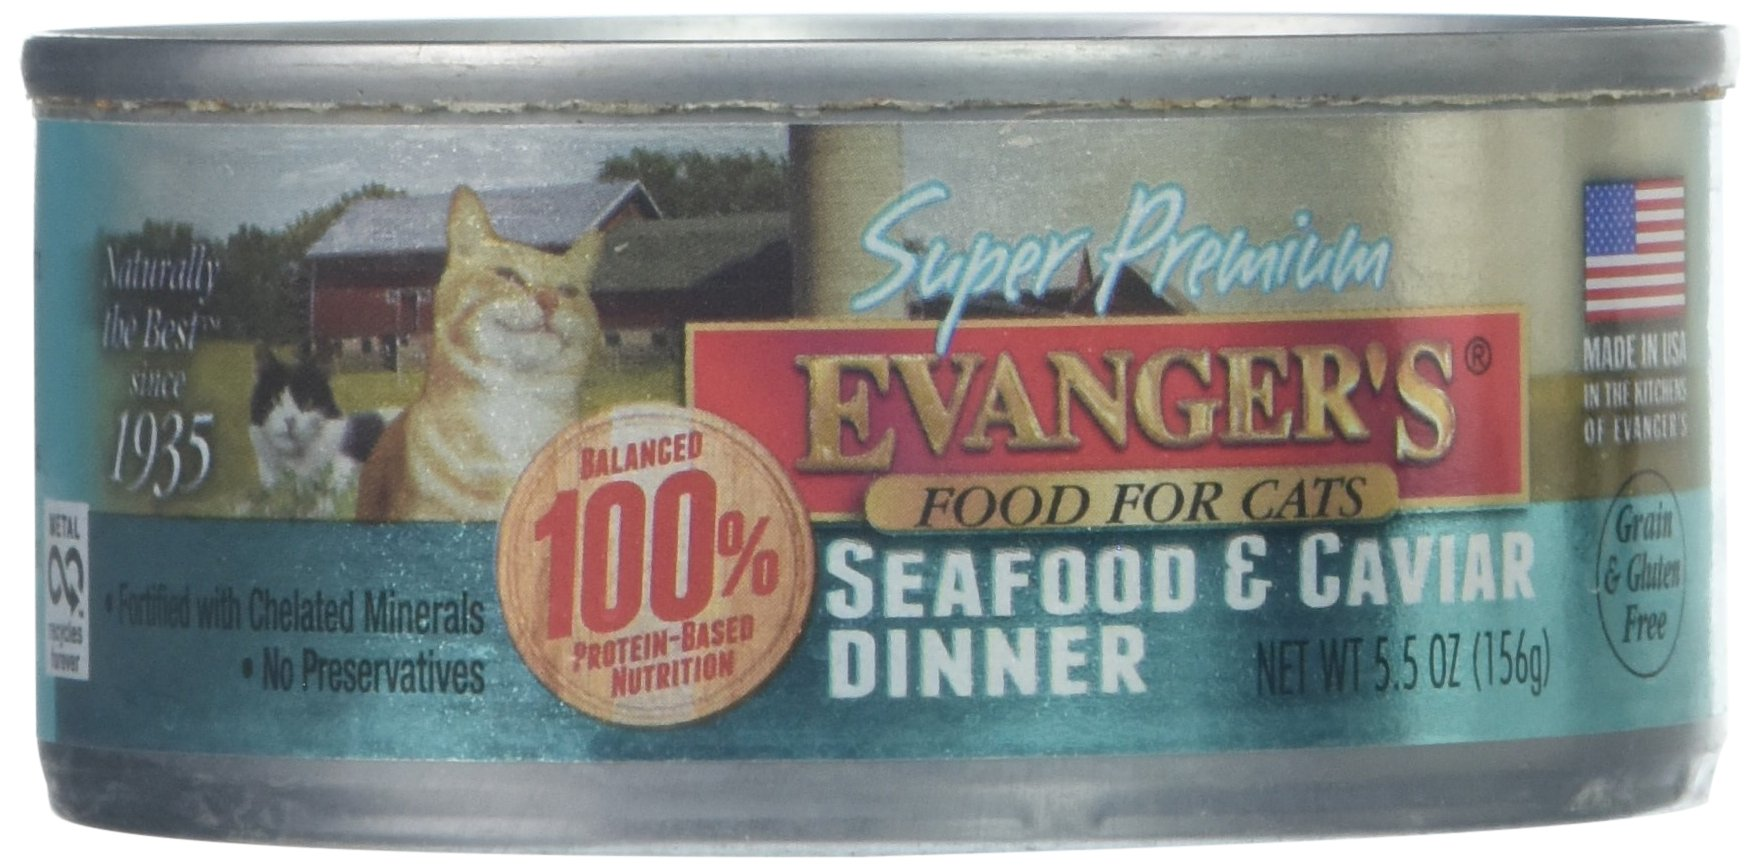 Evanger'S Super Premium Seafood & Caviar Dinner Cat Food, Case Of 24 by Evangers